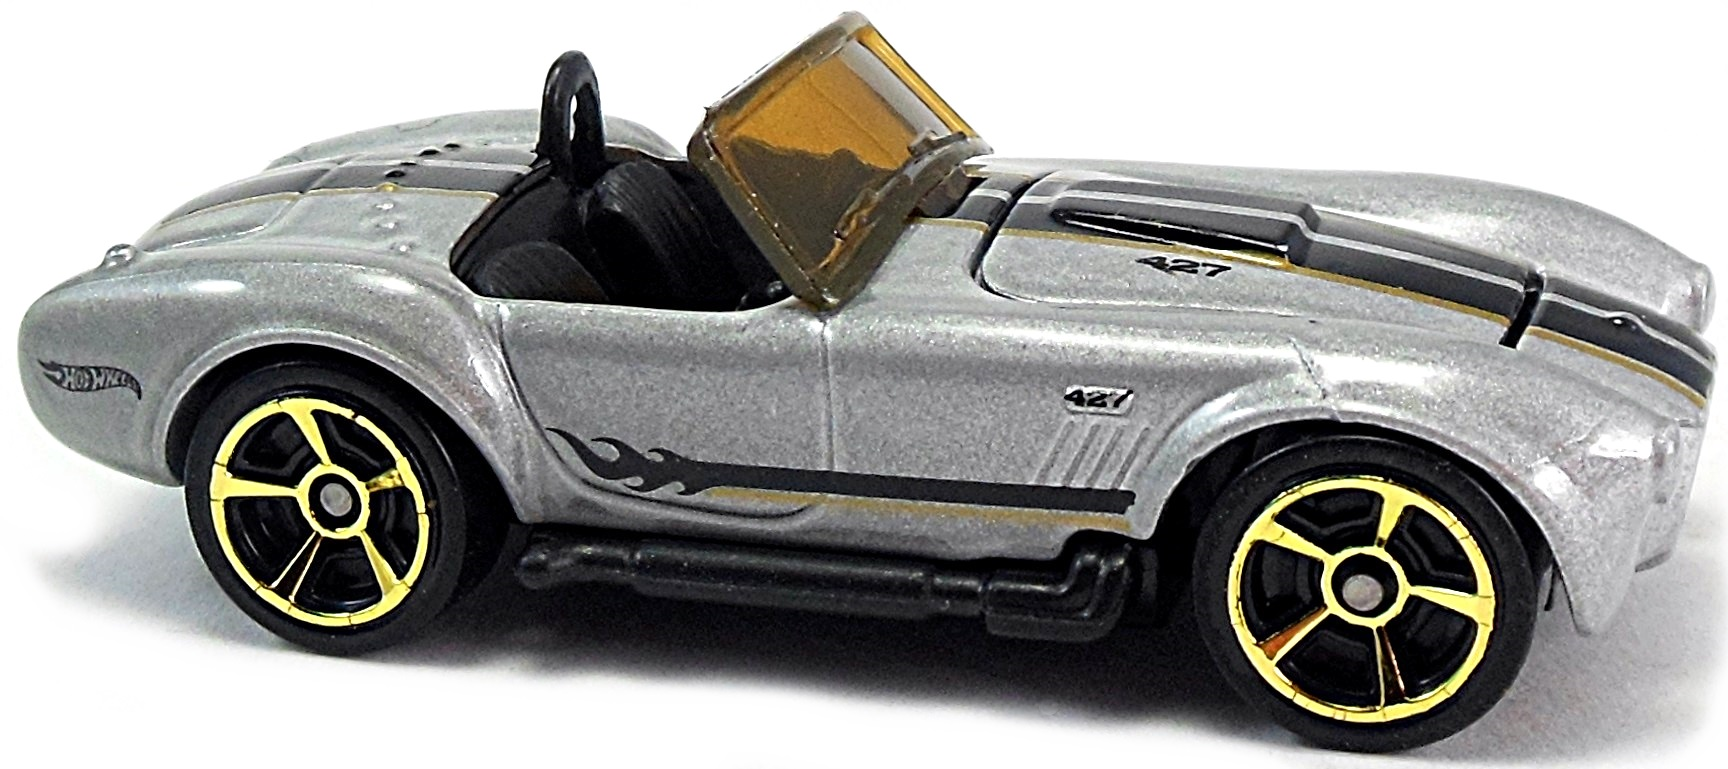 Classic Cobra 67mm 1983 Hot Wheels Newsletter Custom V 8 Vega Blue Factory Seal Bd Mf Gray Black Plastic Base And Int Tinted Windshield Stripes On Hood Trunk Sides Mc5gd Mal Muscle Mania 107 2011 1 2